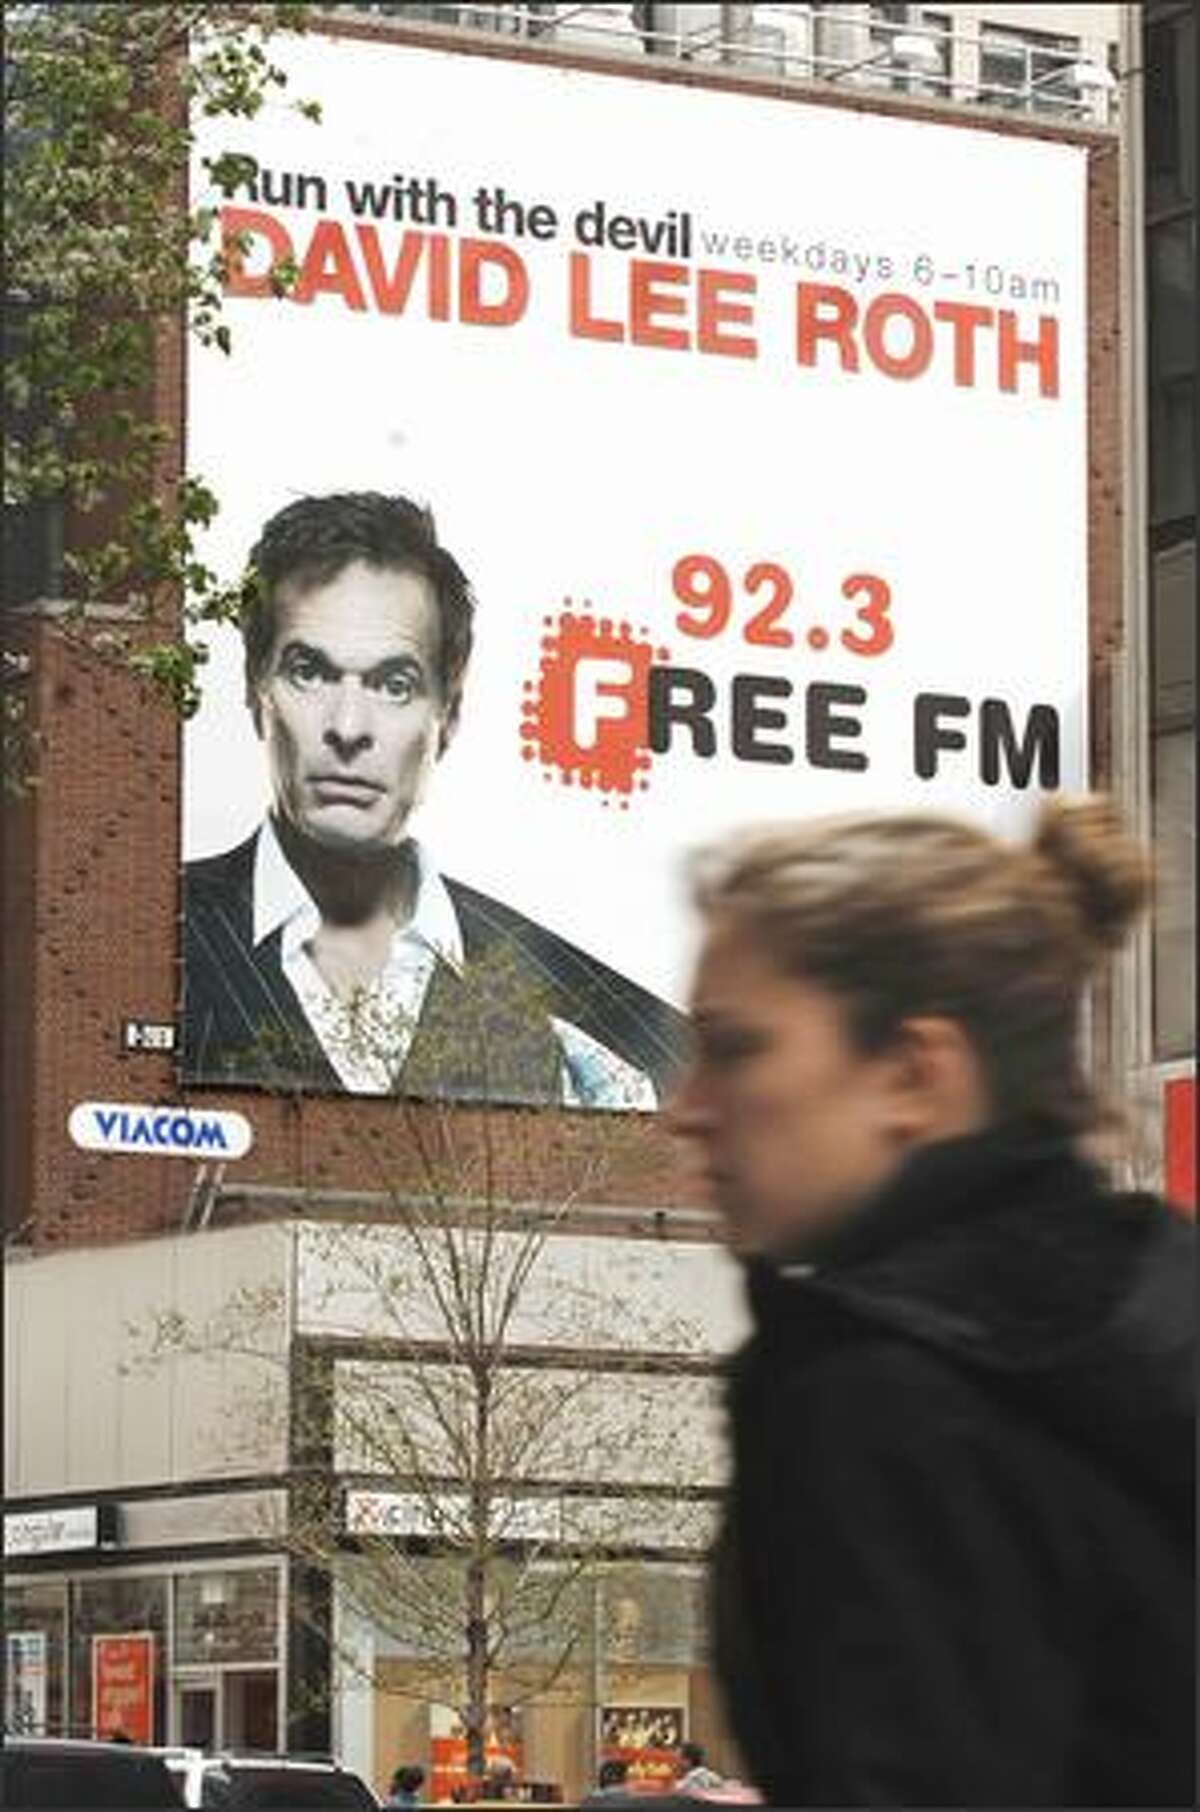 David Lee Roth, looking like a middle-age business guy and not the once goofy glam-rockin' frontman for Van Halen, looms above midtown Manhattan in a desperate attempt for attention as his numbers as Howard Stern's replacement continue to plummet.